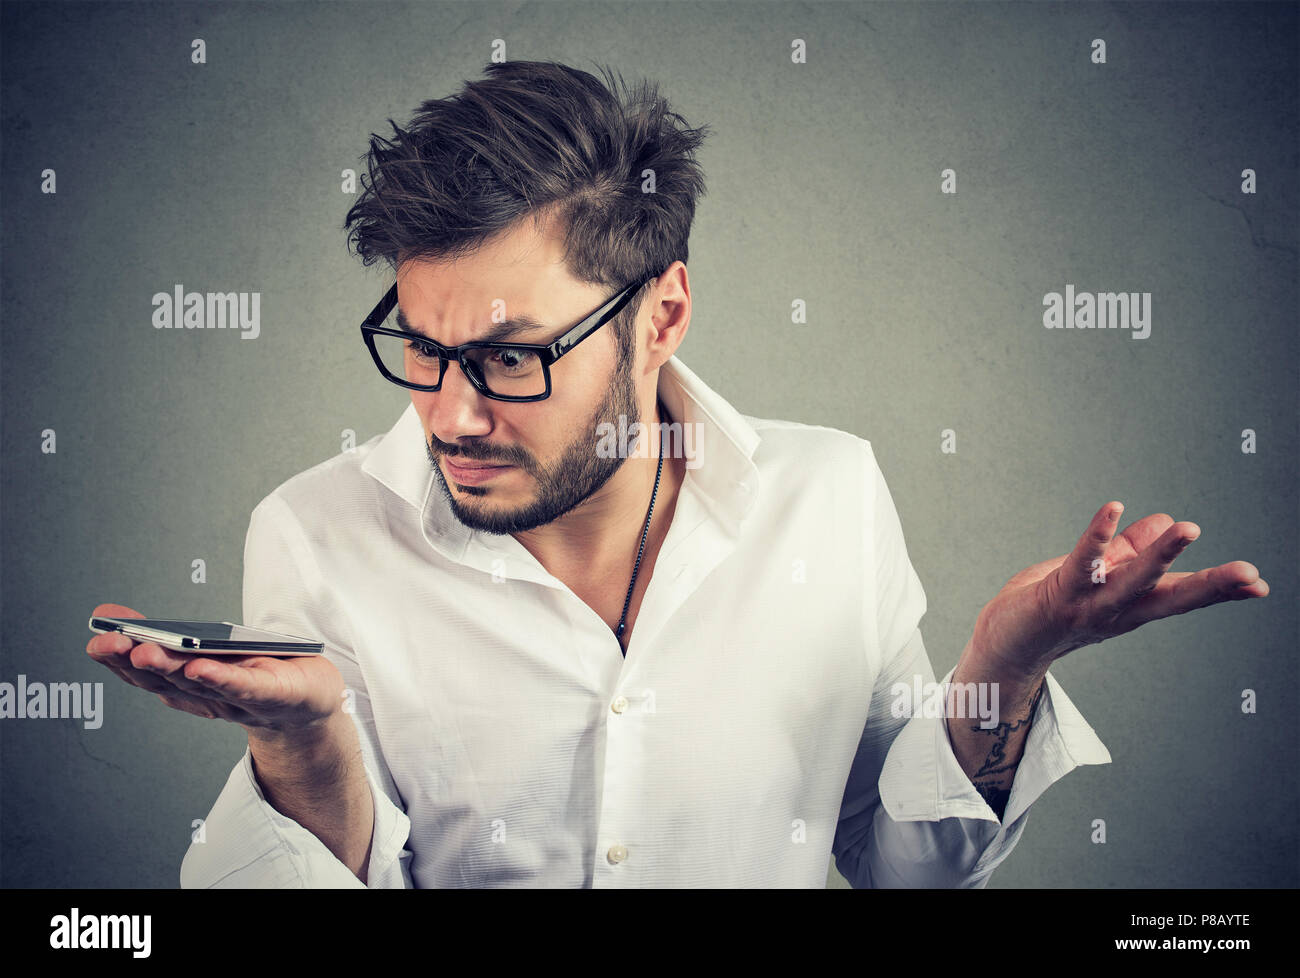 Young trendy man holding phone and looking at it with frustration having problems with gadget - Stock Image